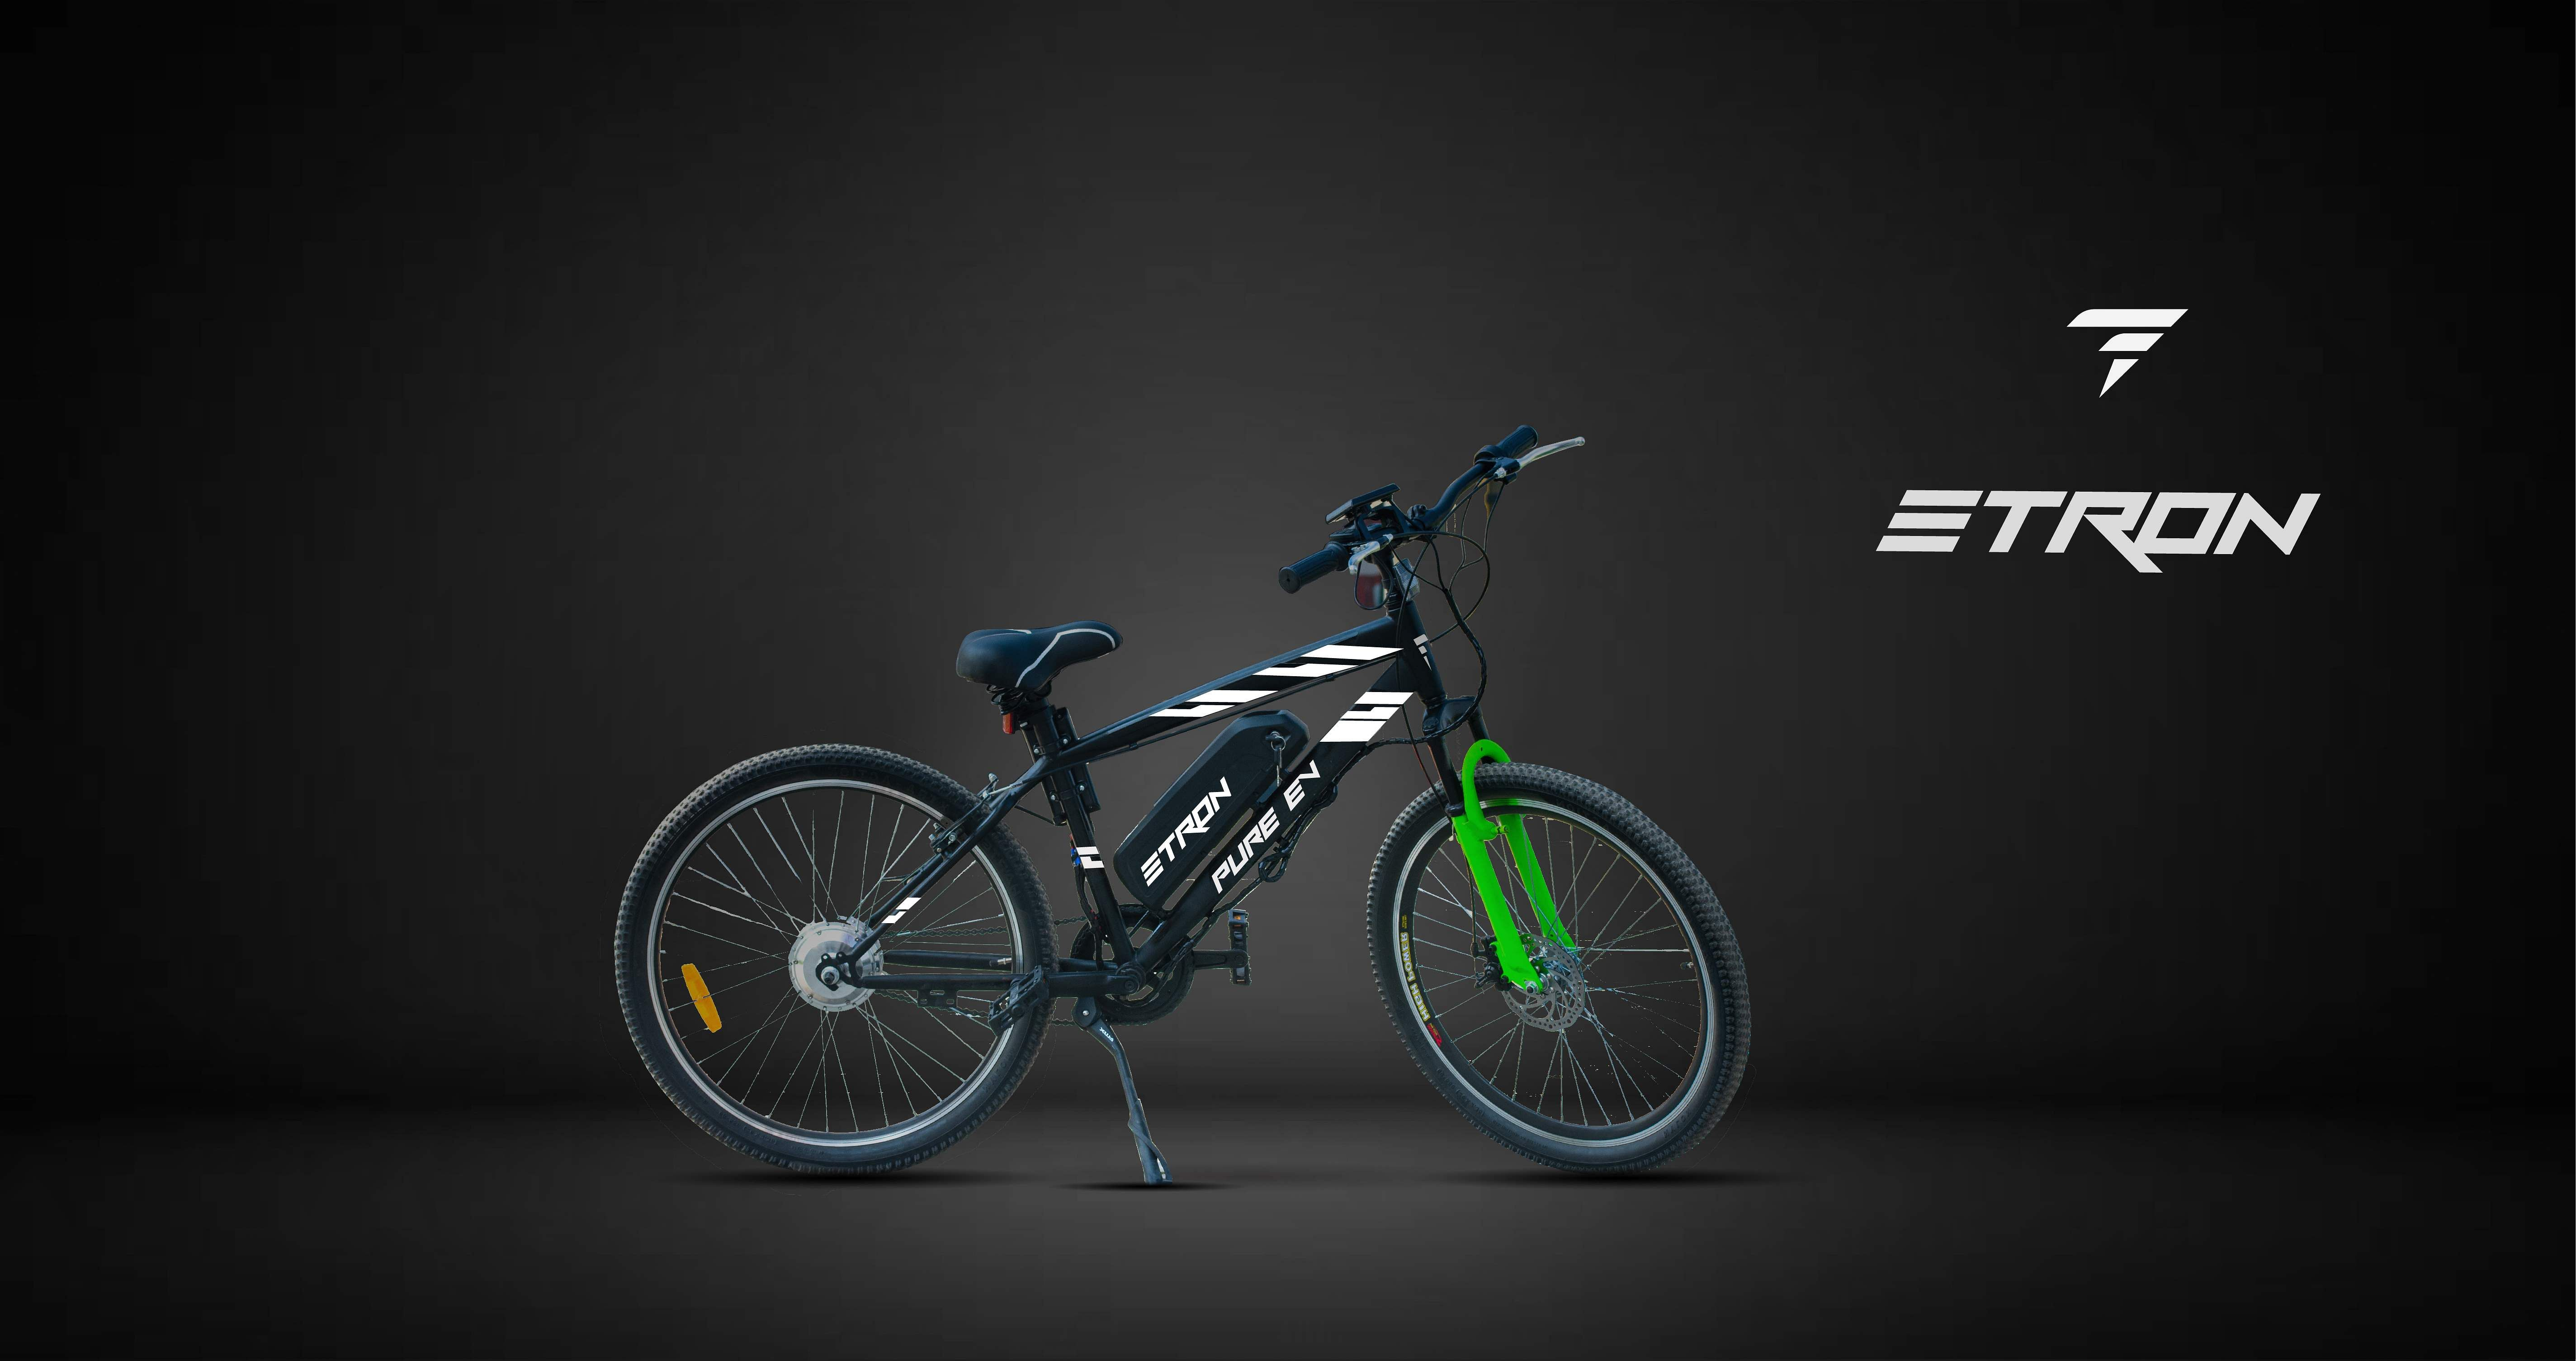 The next cool bicycle ETron is here